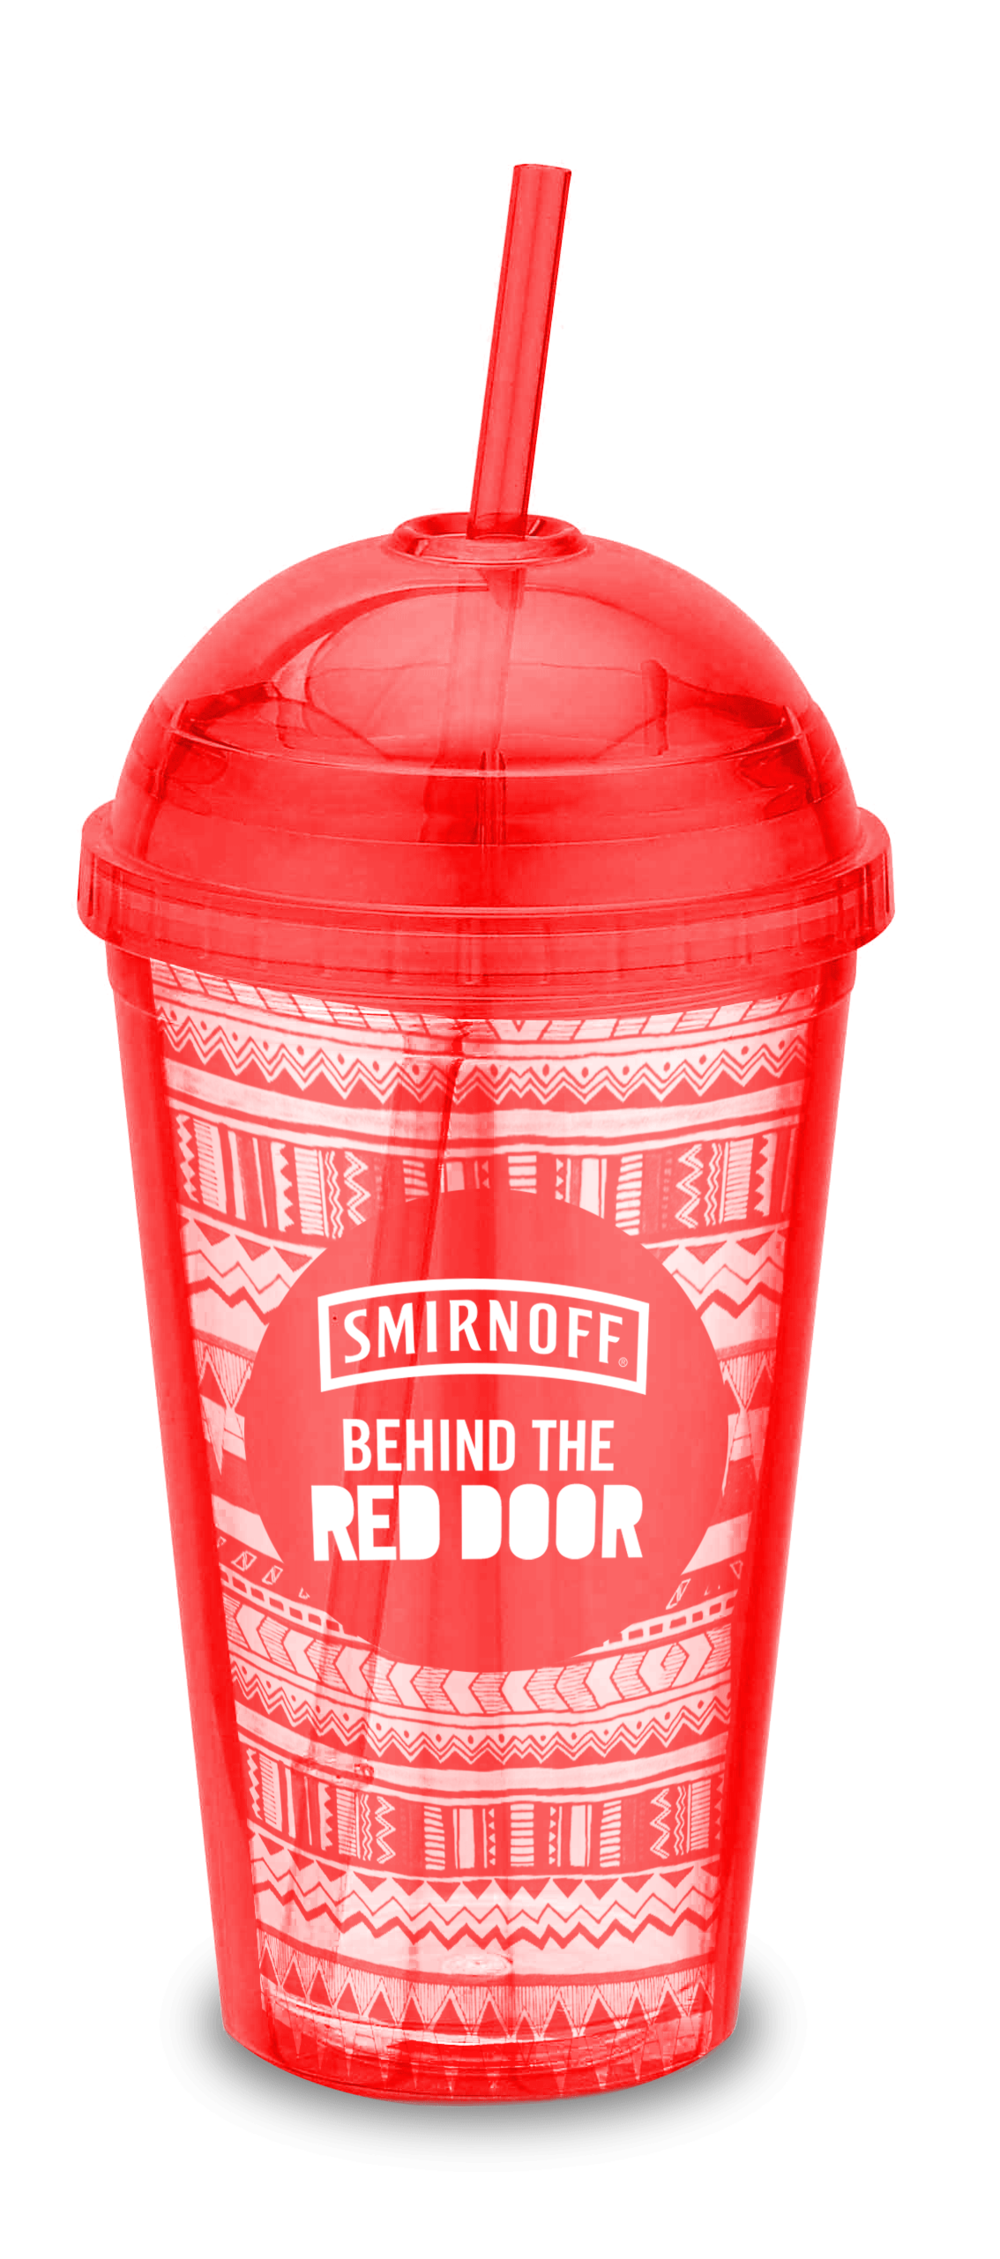 Smirnoff_festival_cup.png